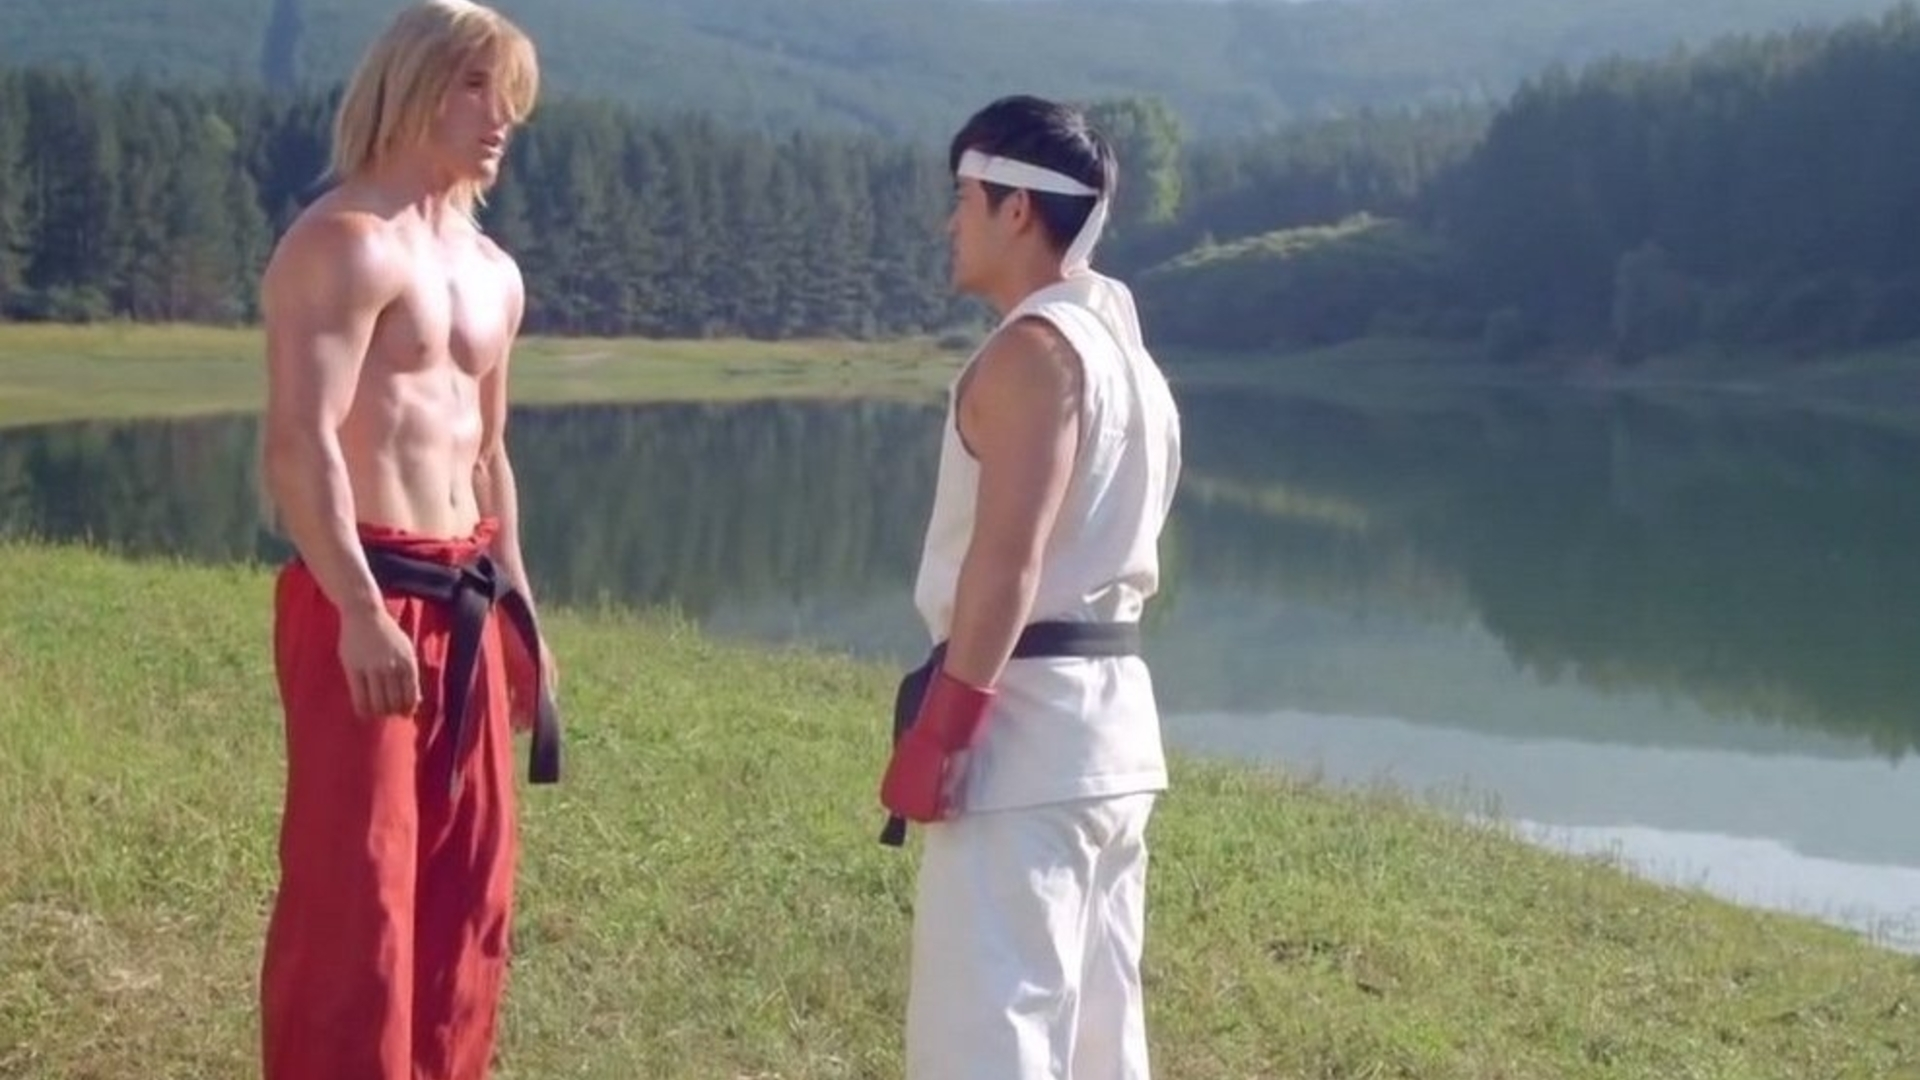 Watch episode one of live action Street Fighter series